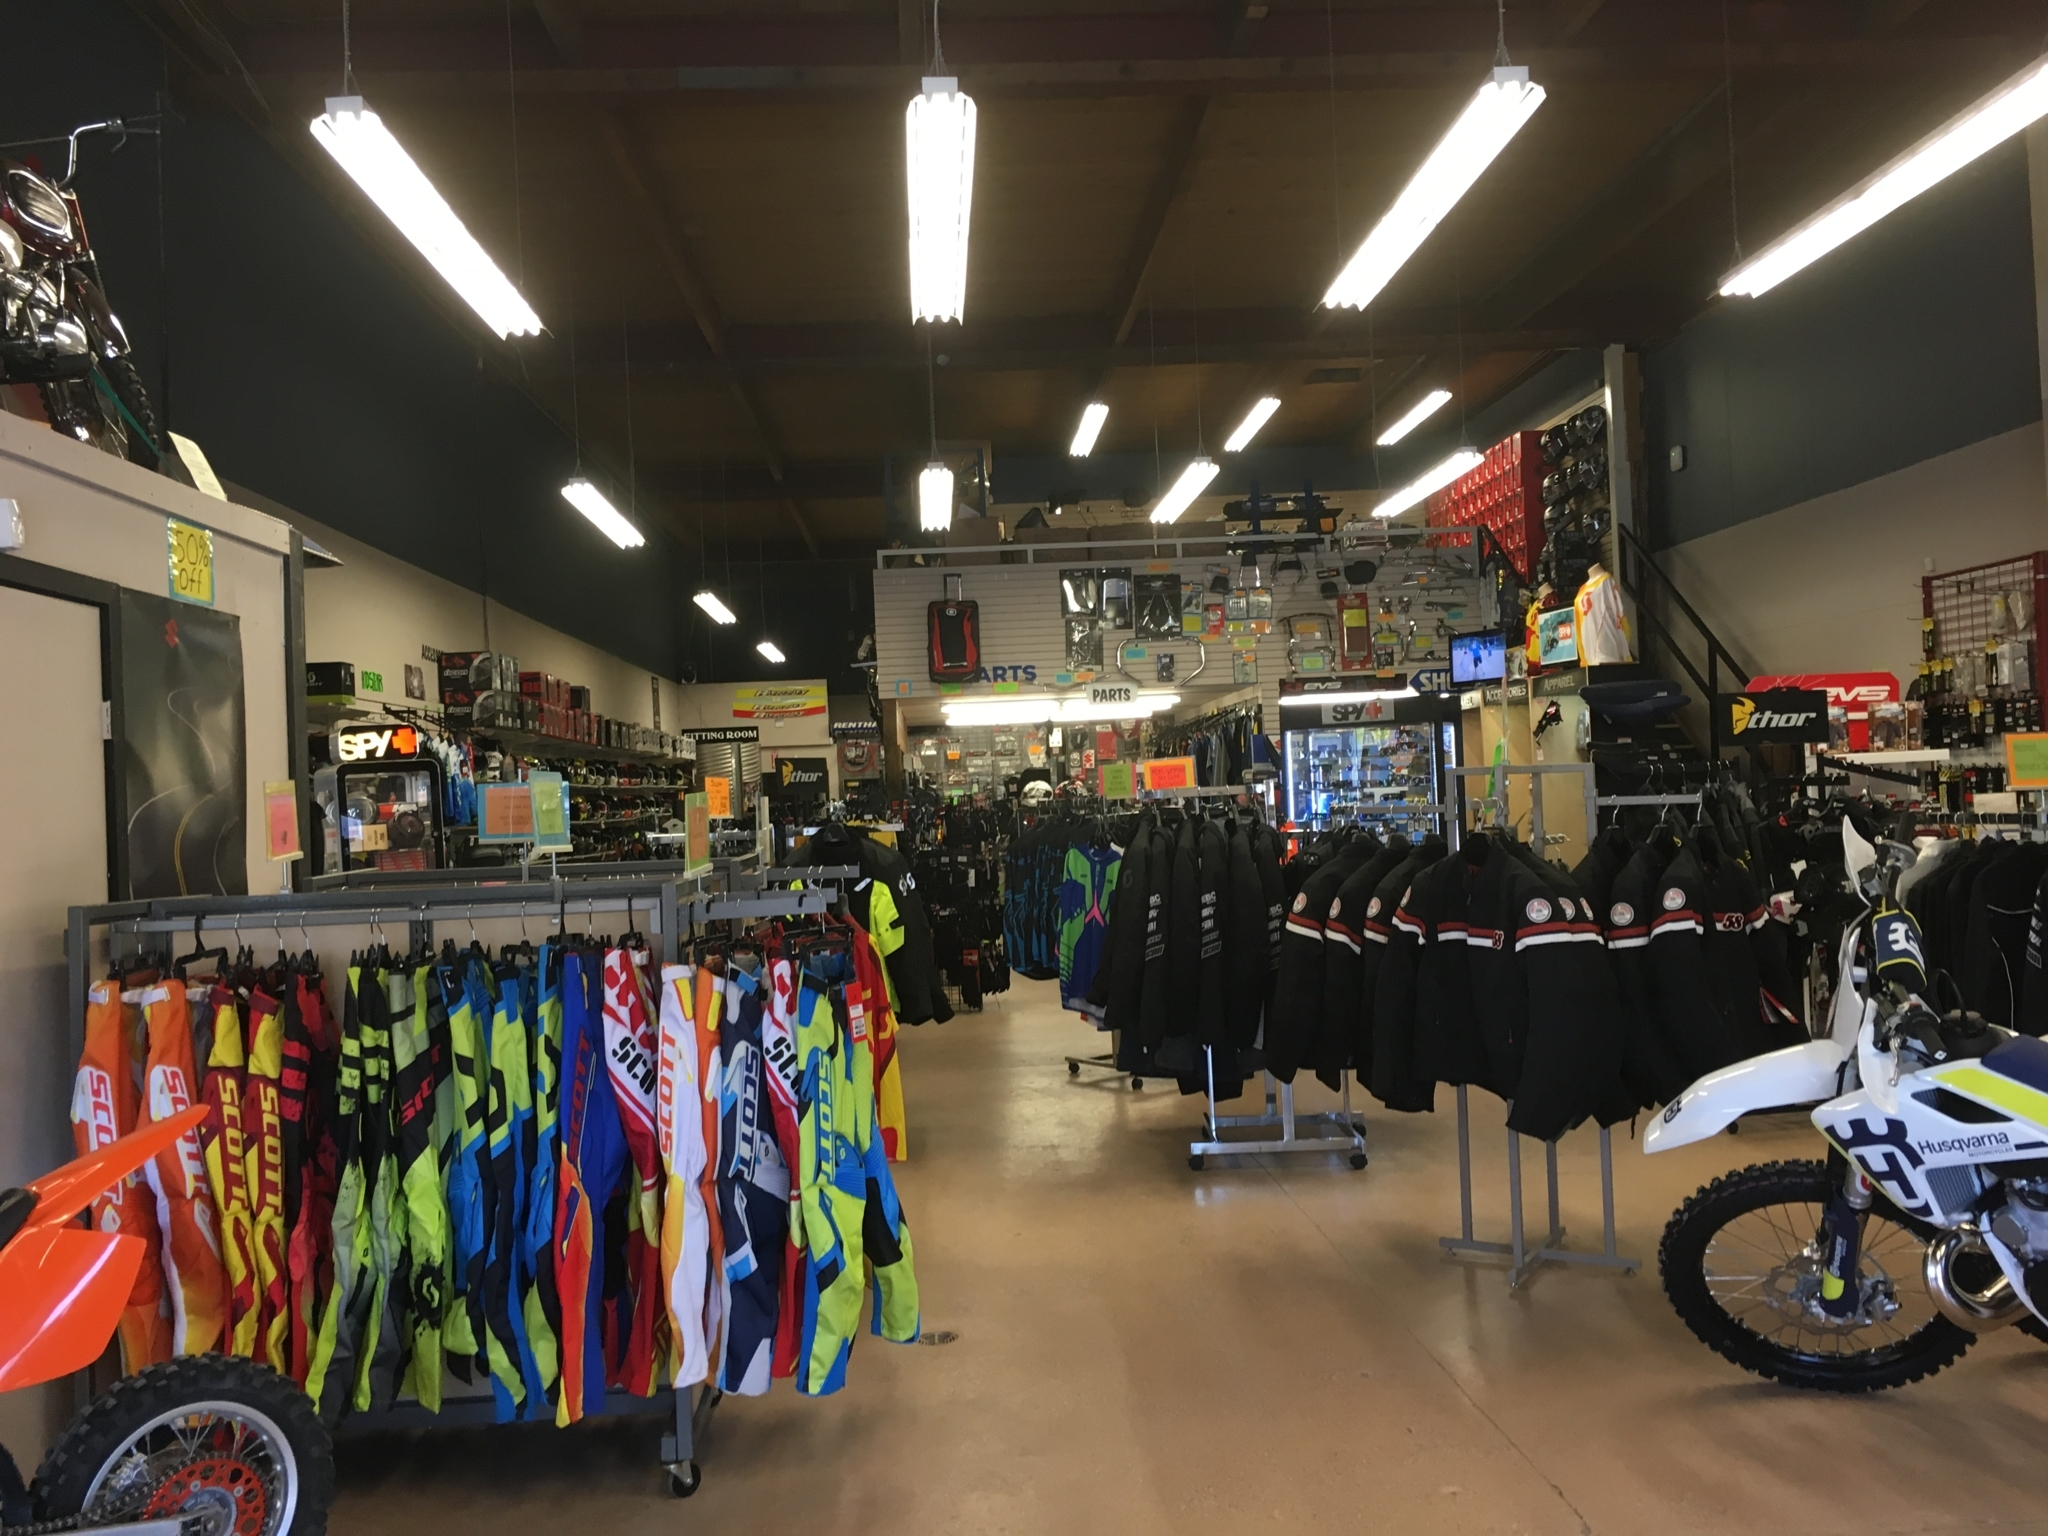 Rivercity Cycle Ltd in Kamloops